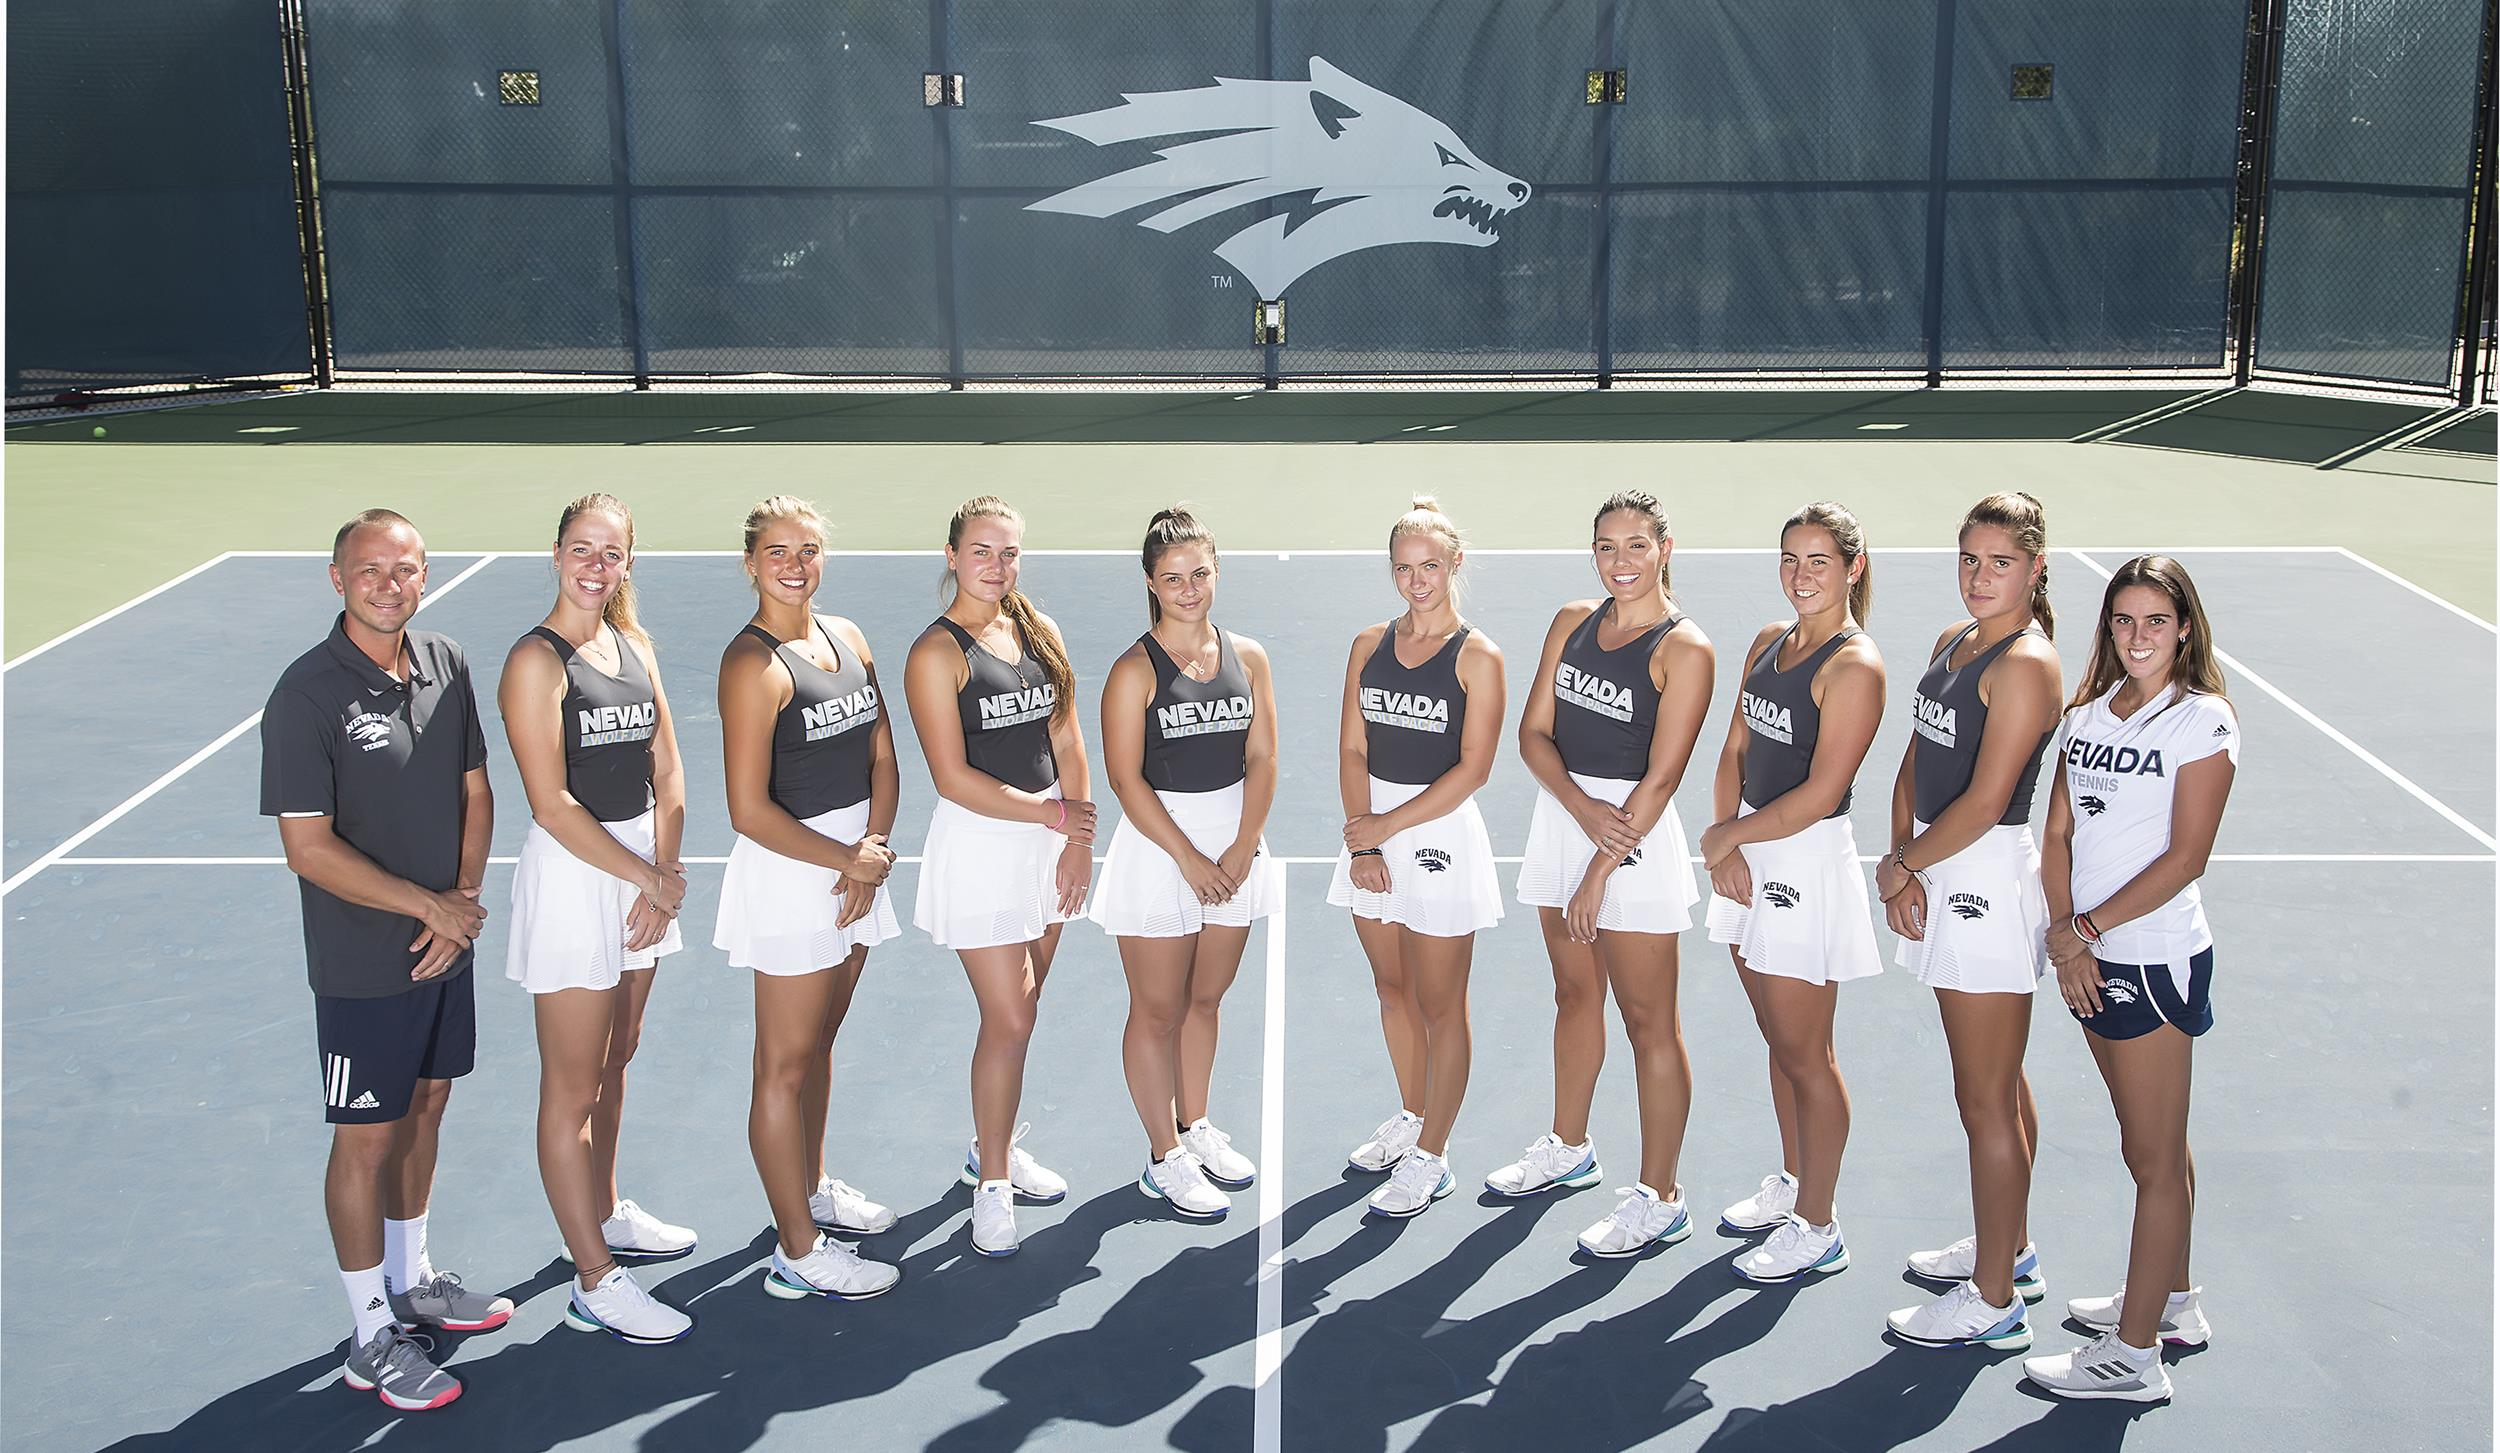 Weather forces weekend women's tennis matches to be postponed